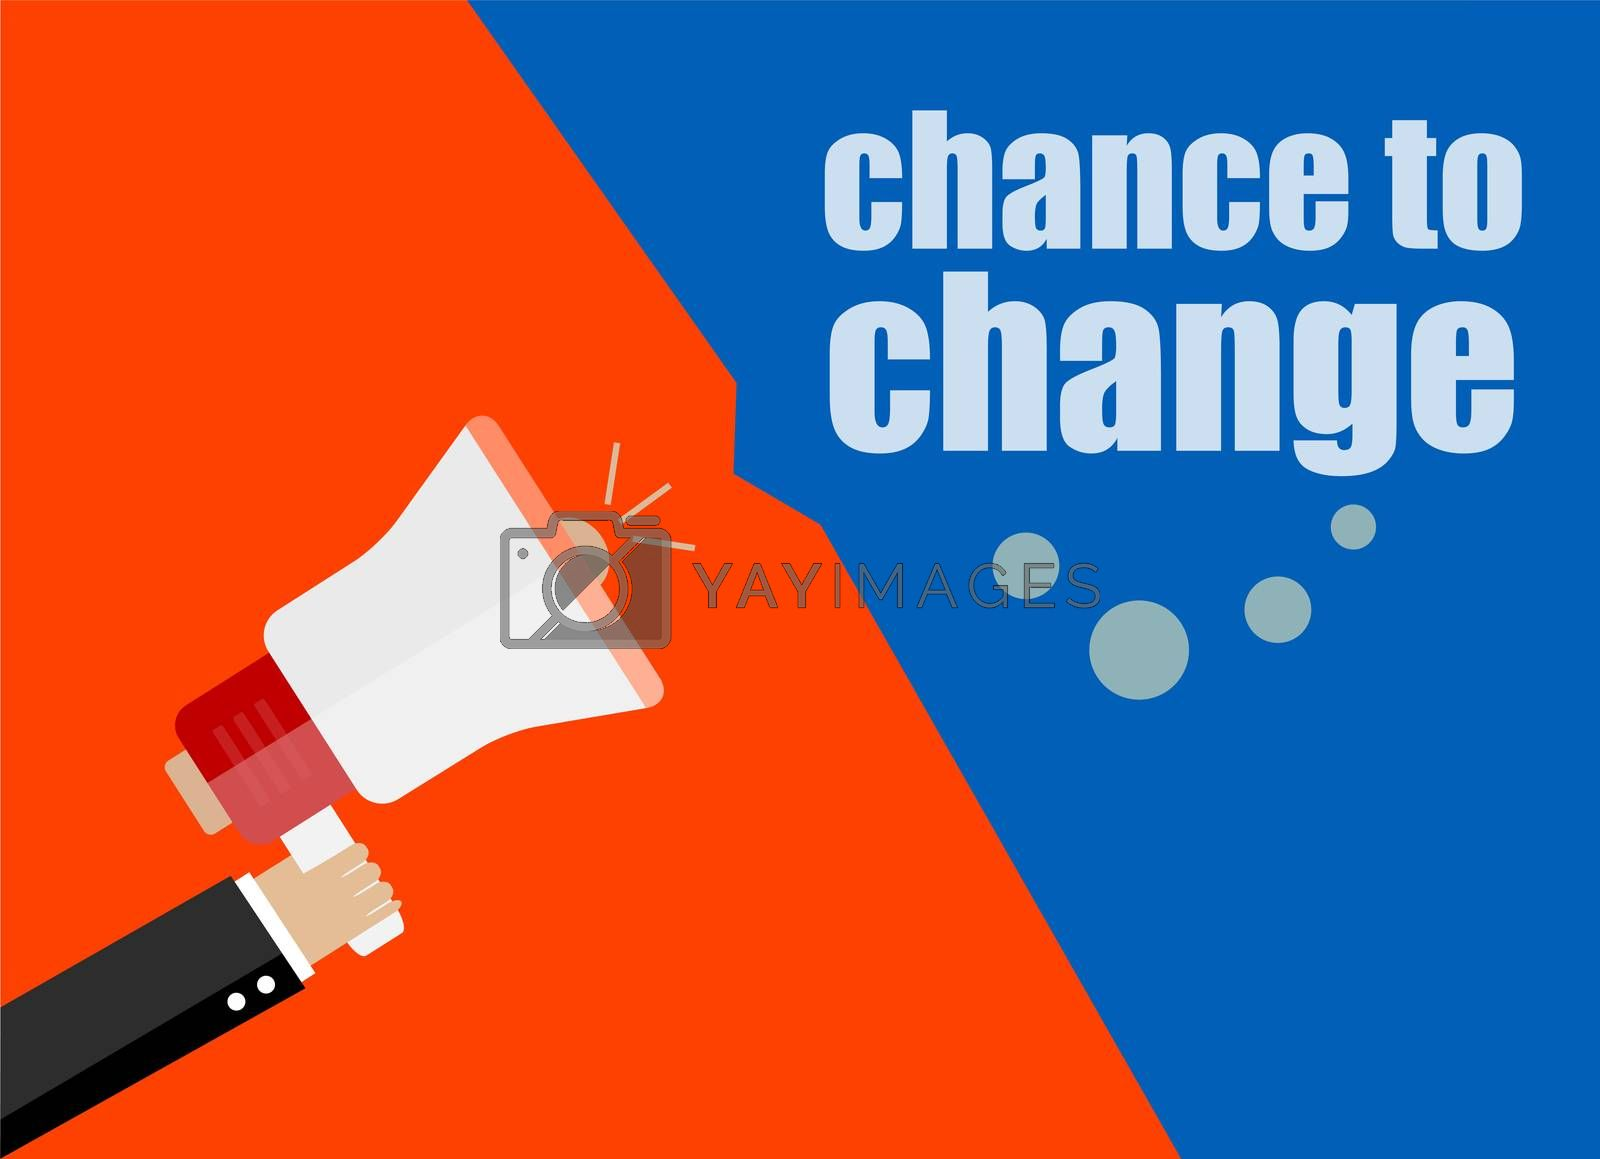 flat design business concept. chance to change. Digital marketing business man holding megaphone for website and promotion banners.